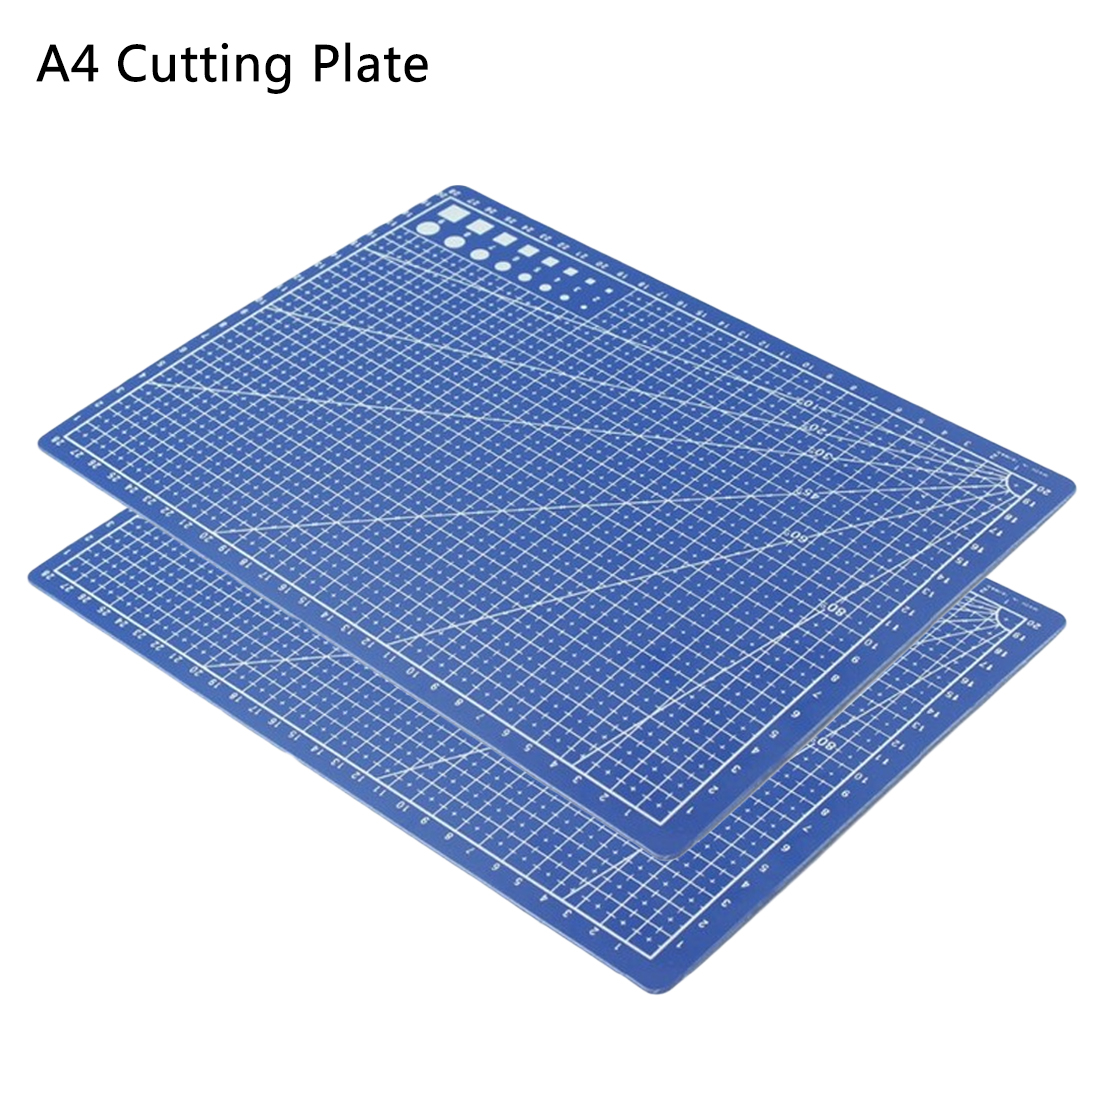 1PC Double-side A4 Cutting Plate Grid Lines Self Healing Cutting Mat Craft Card Paper Board For Office Supplies